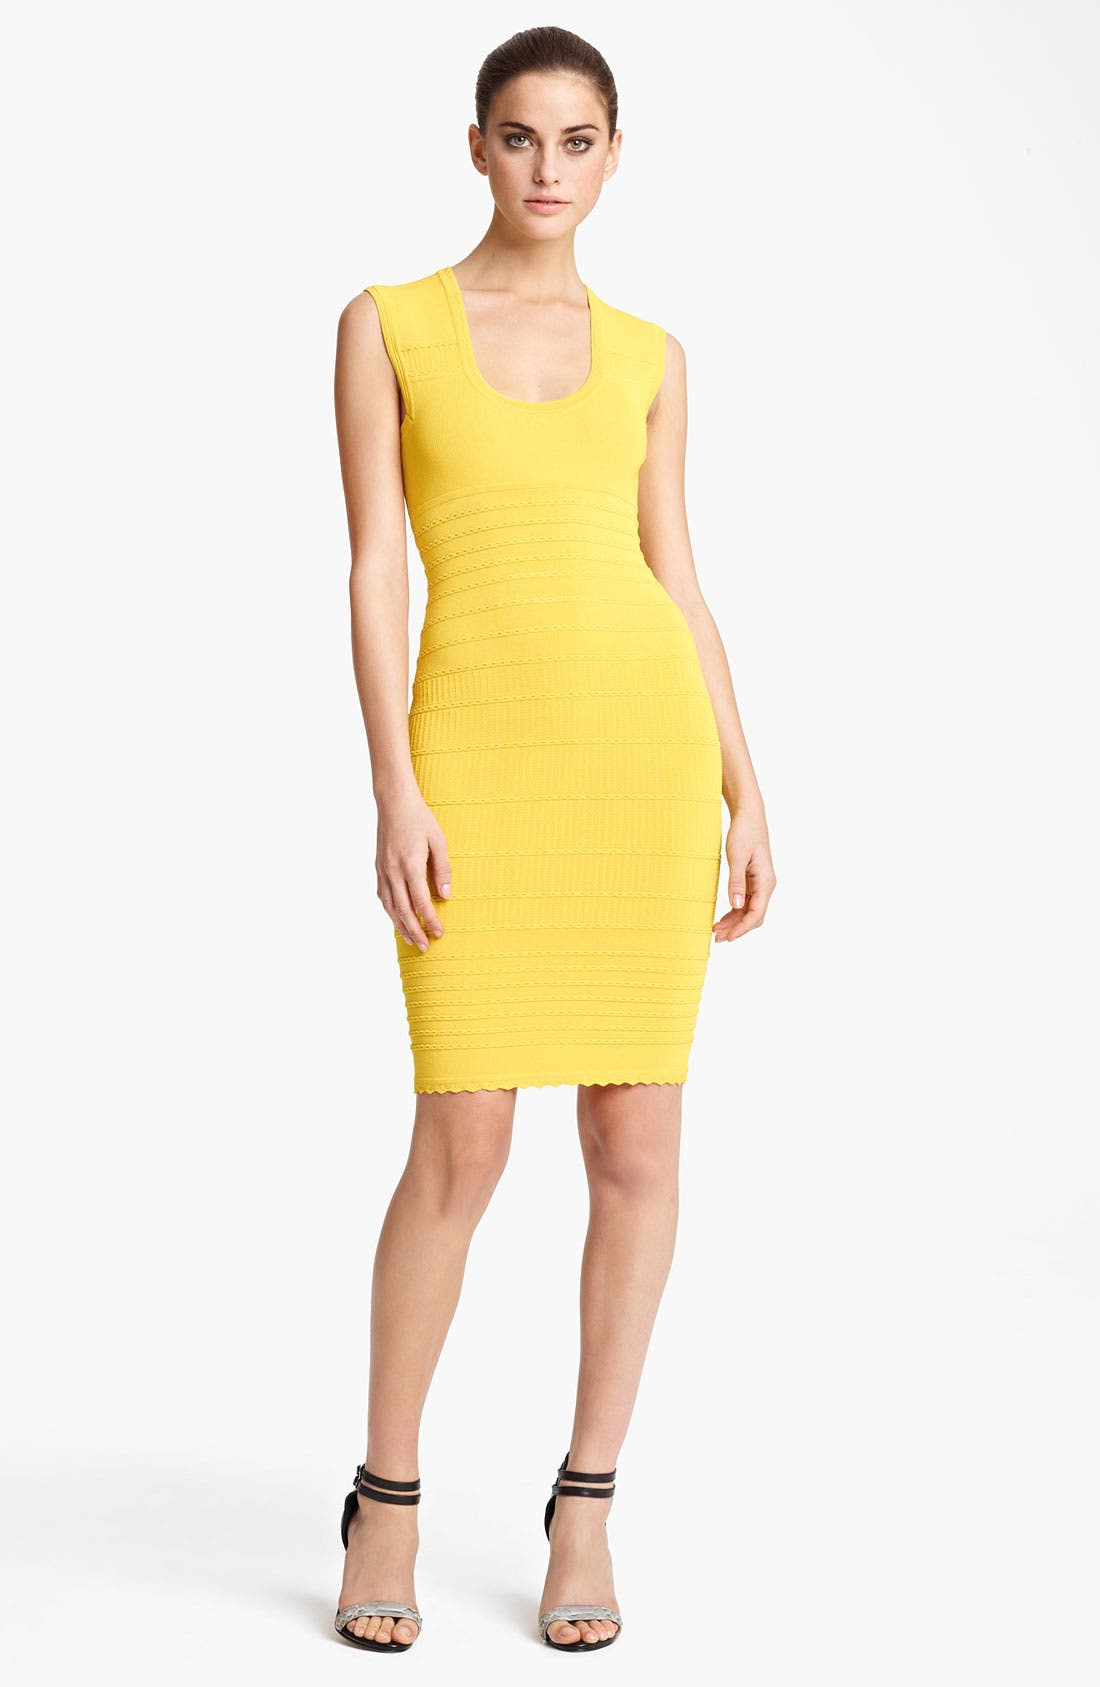 Alternate Image 1 Selected - Yigal Azrouël Scoop Neck Knit Dress